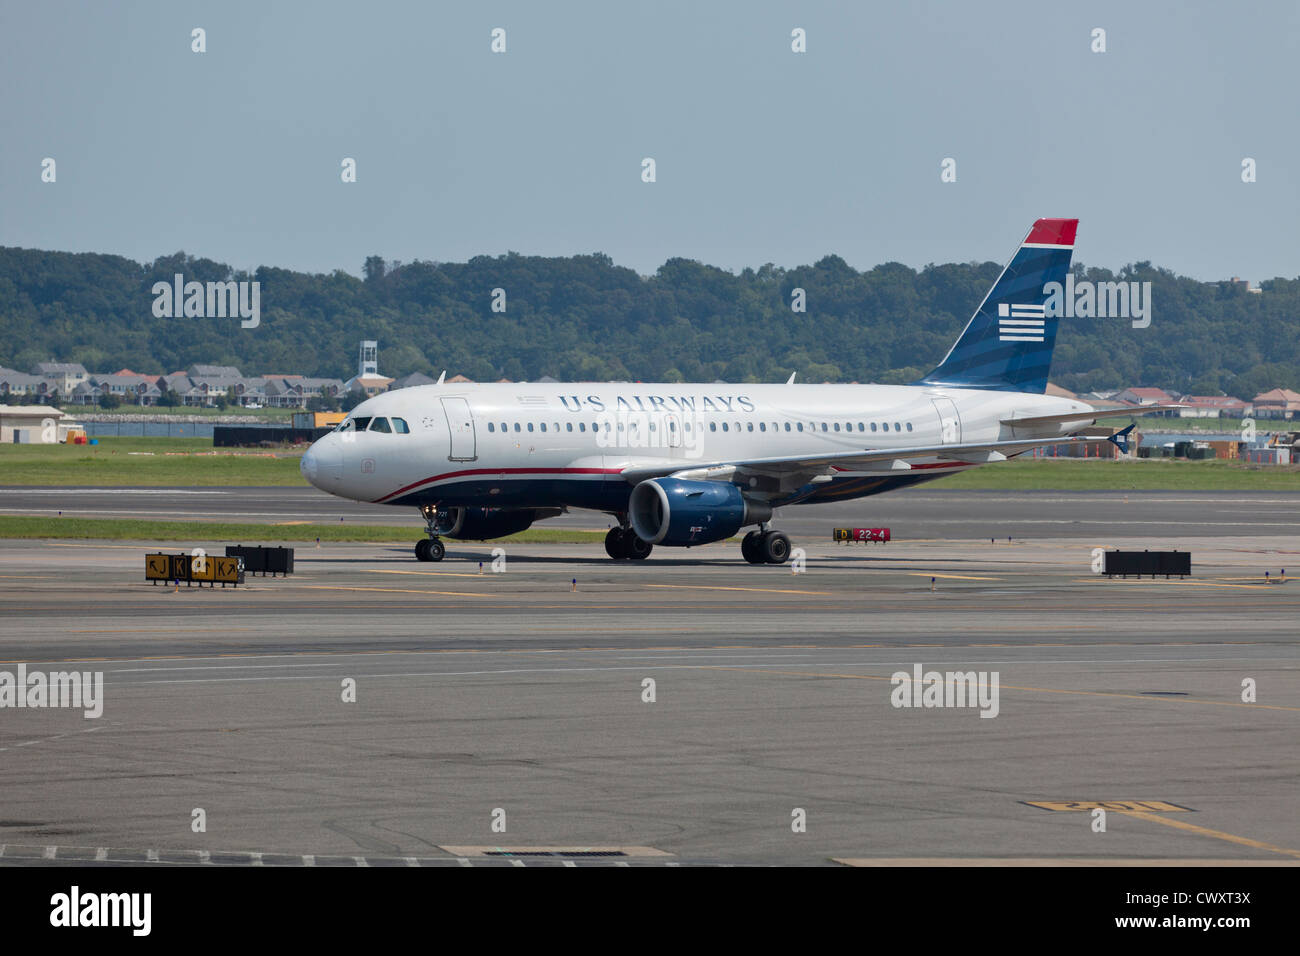 Un US Airways commuter jet su pista Immagini Stock